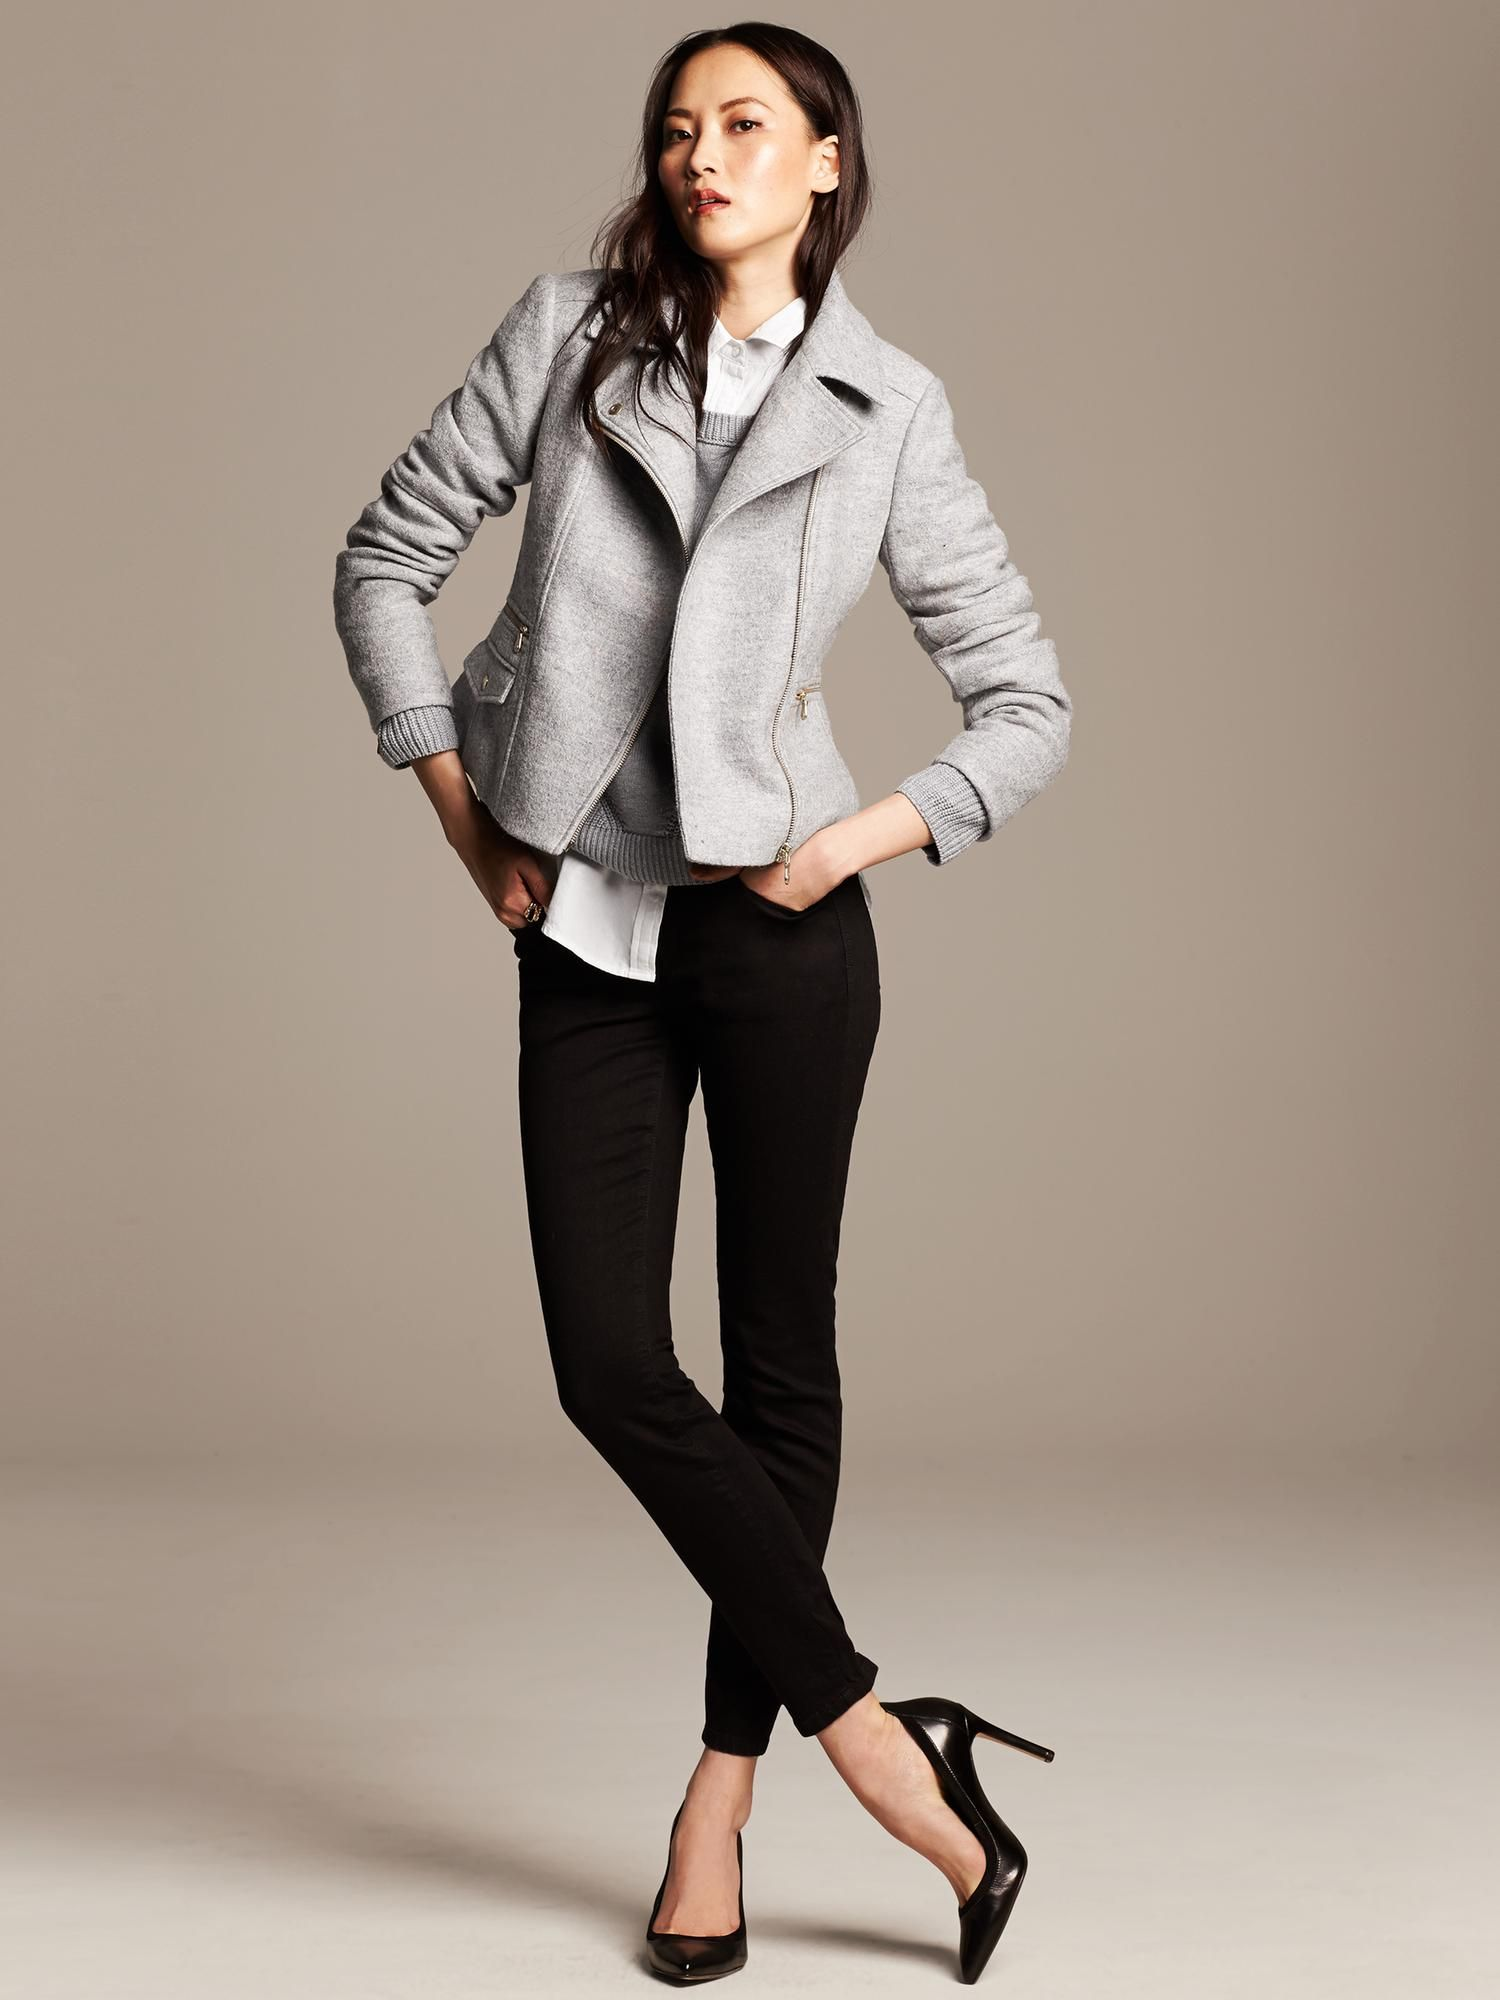 Banana Republic Fall 2014...I want that double broiler